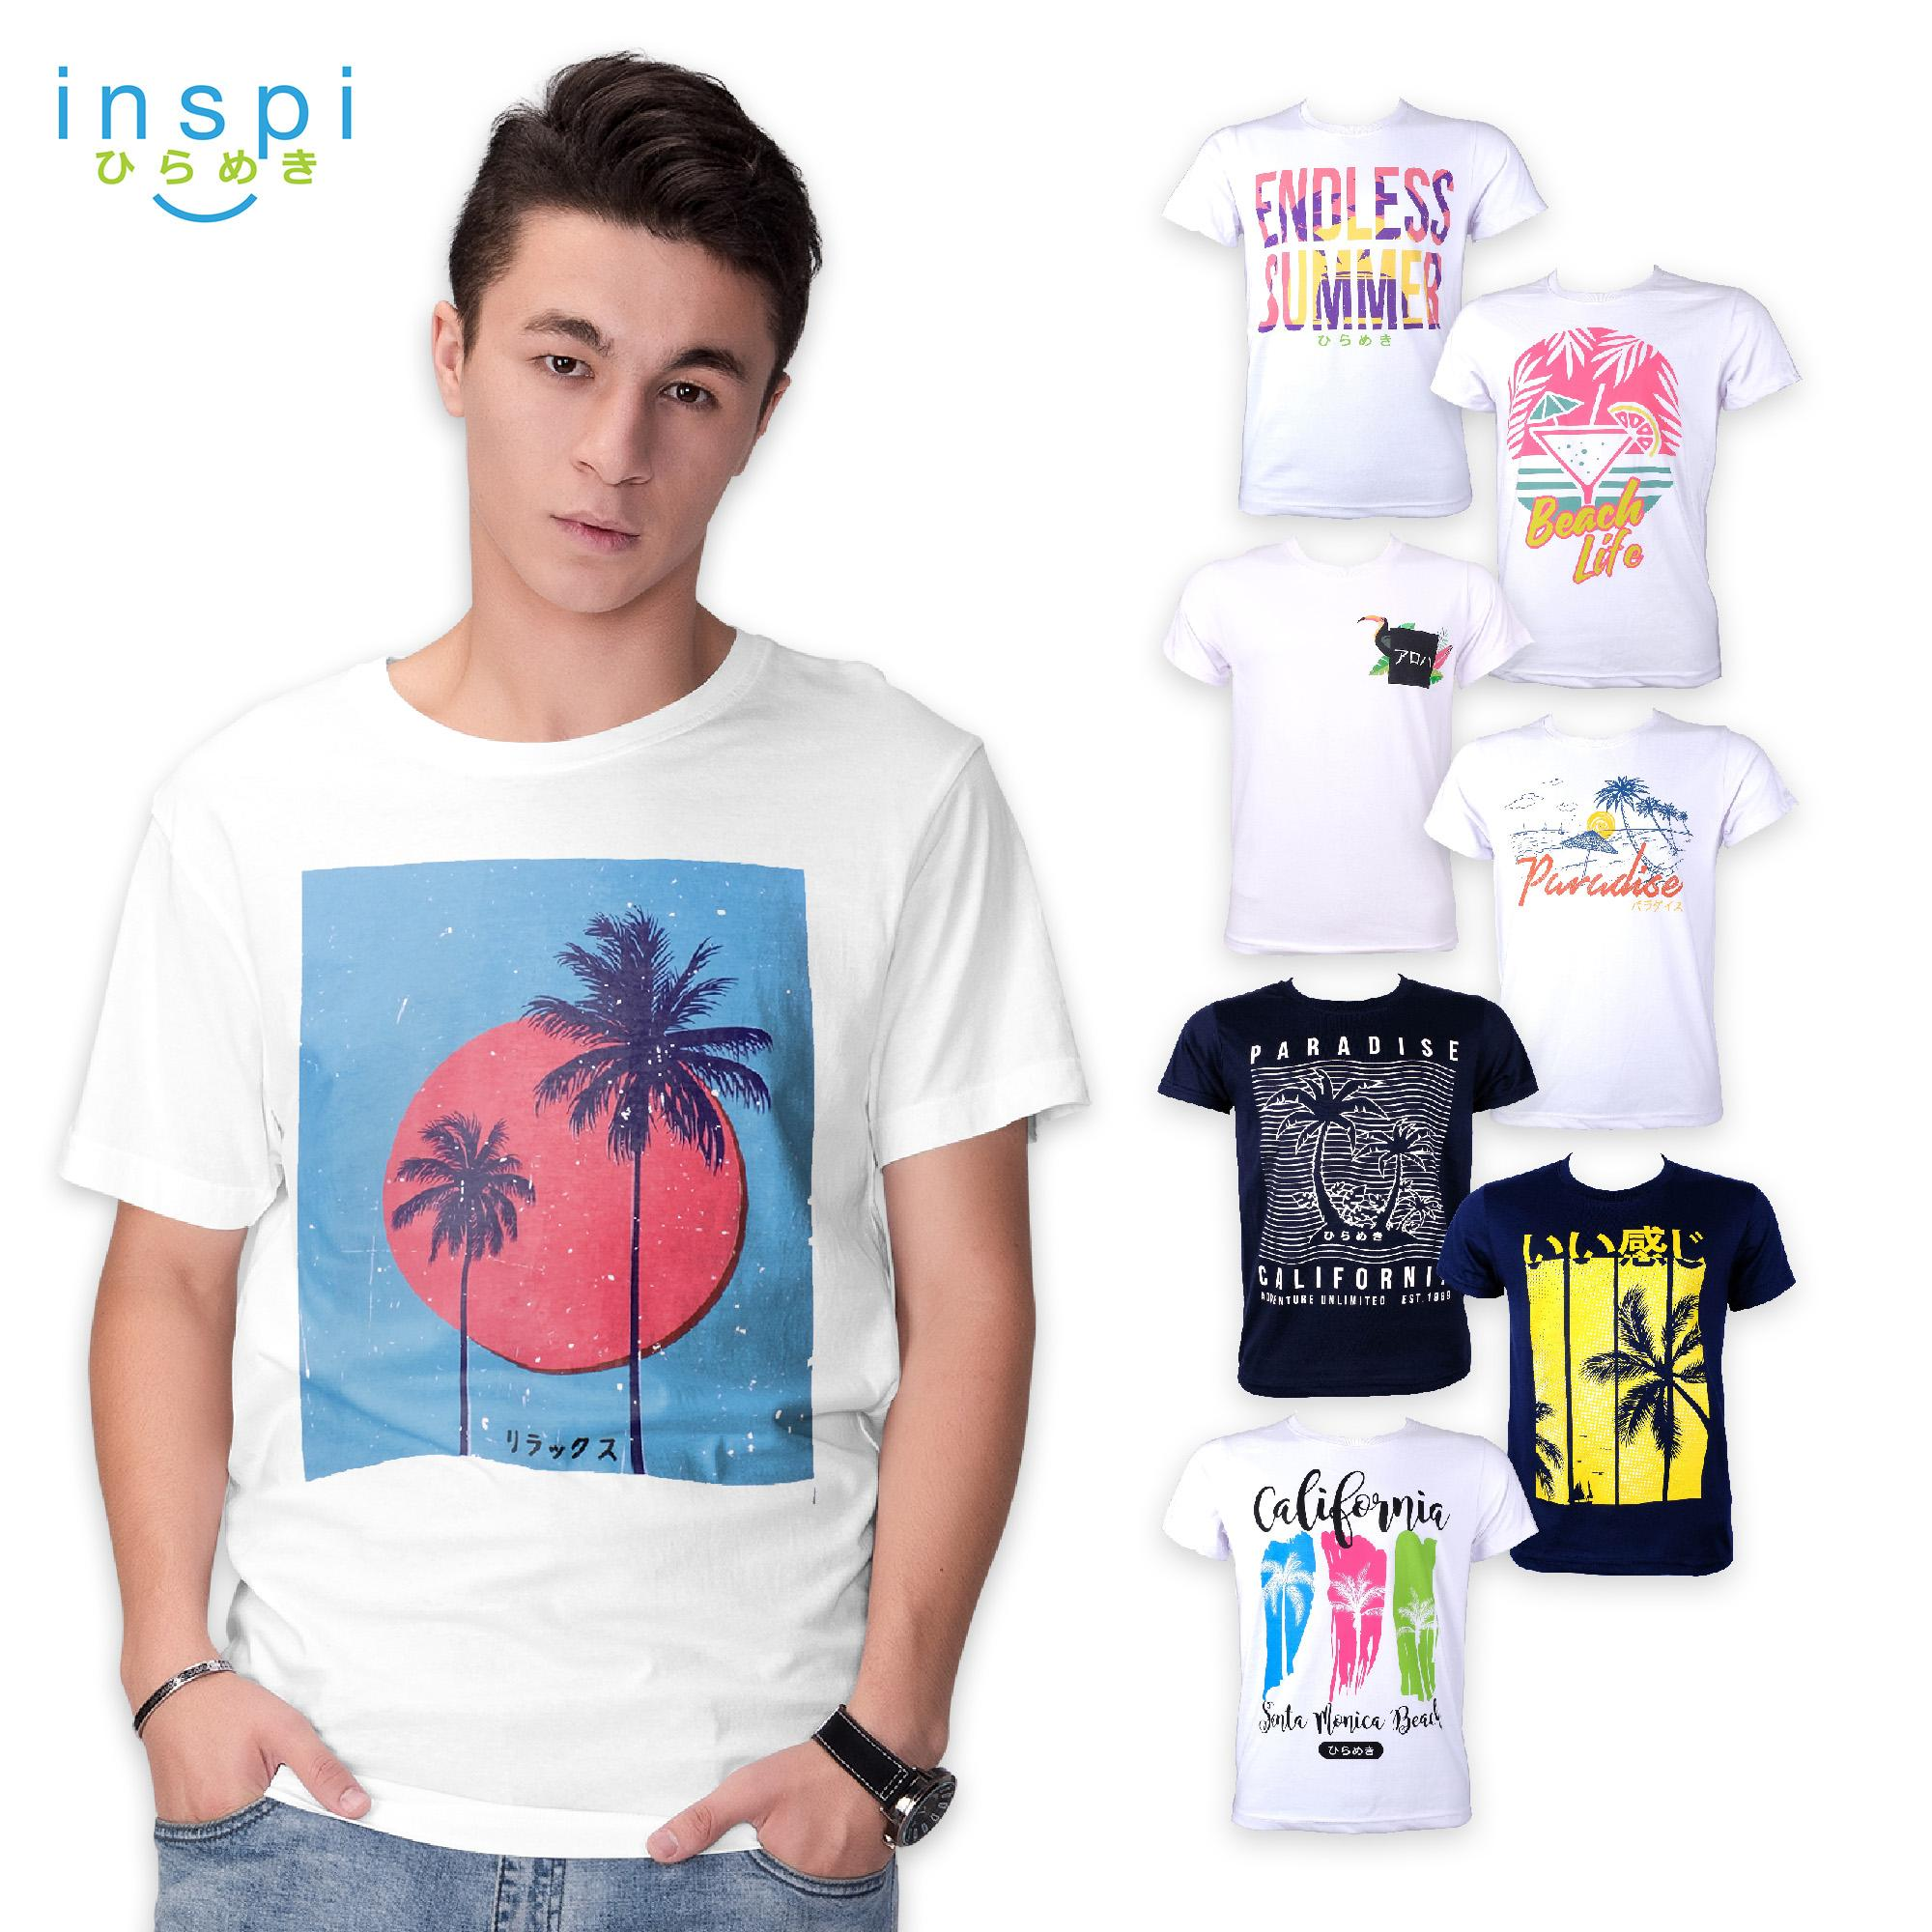 2789017779617 INSPI Tees Summer Collection tshirt printed graphic tee Mens t shirt shirts  for men tshirts sale